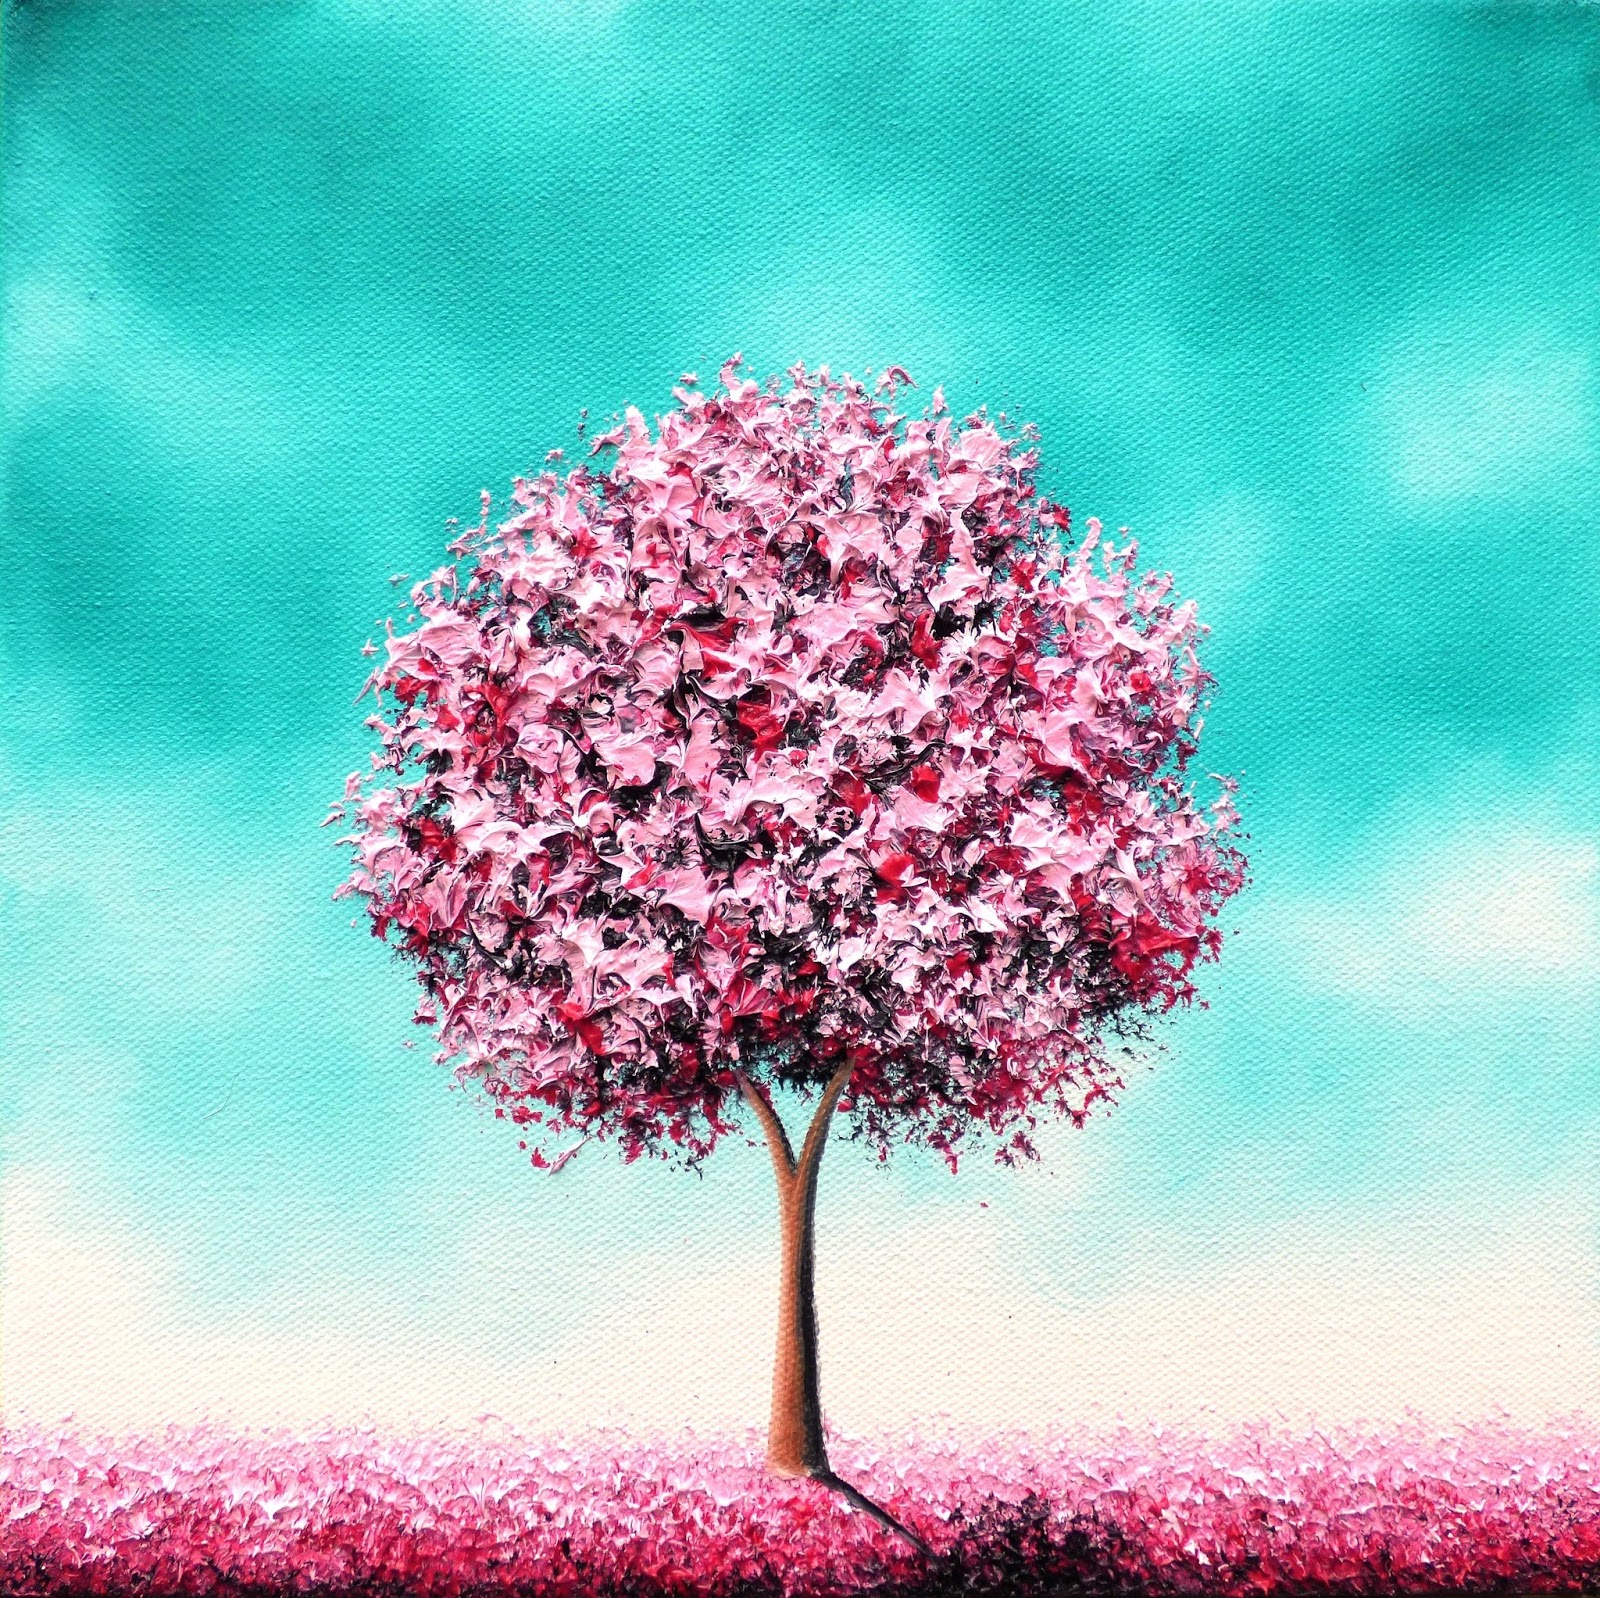 Pink Cherry Blossom Tree Painting Original Oil Whimsical Landscape Contemporary Textured Art 10x10 Beauty In The Bloom